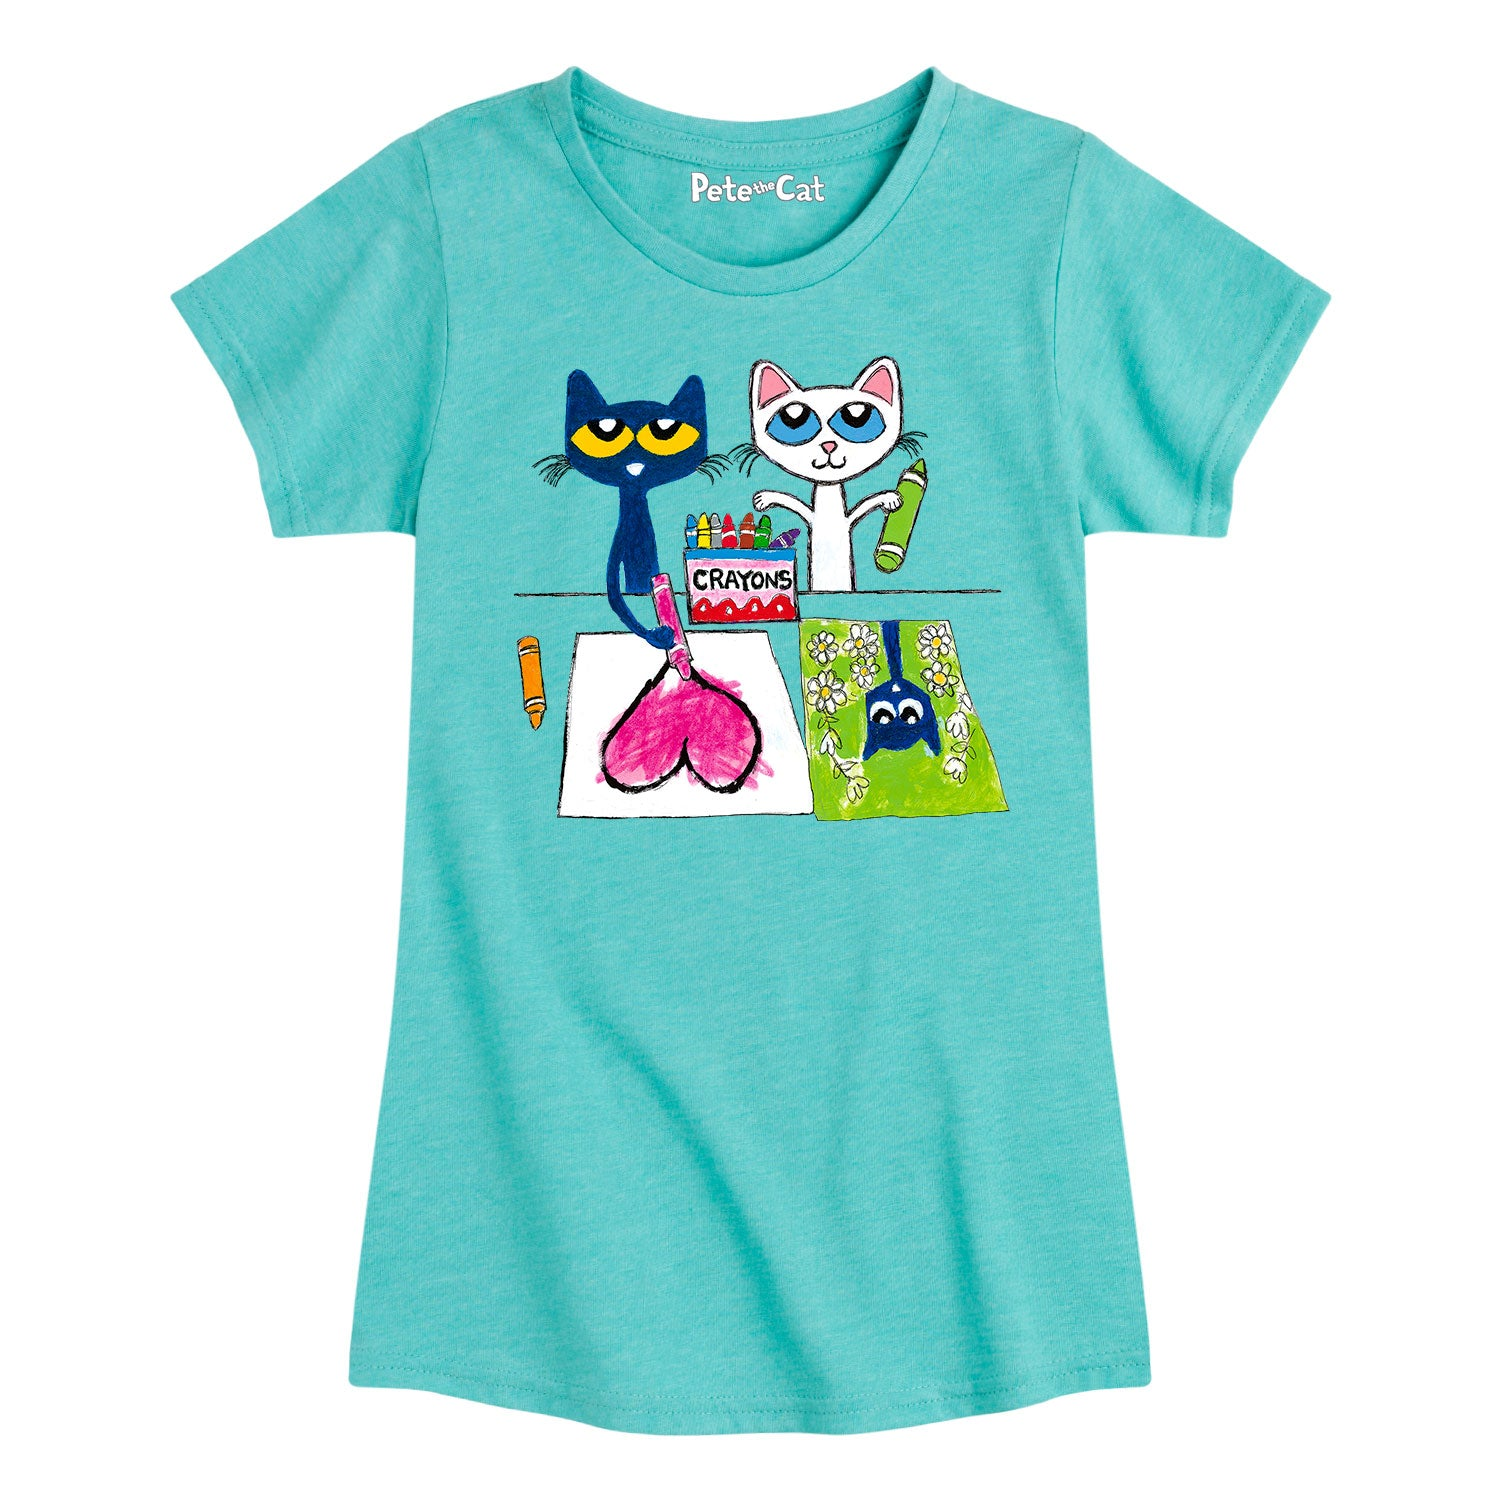 Pete And Calli Drawing - Youth & Toddler Girls Short Sleeve T-Shirt